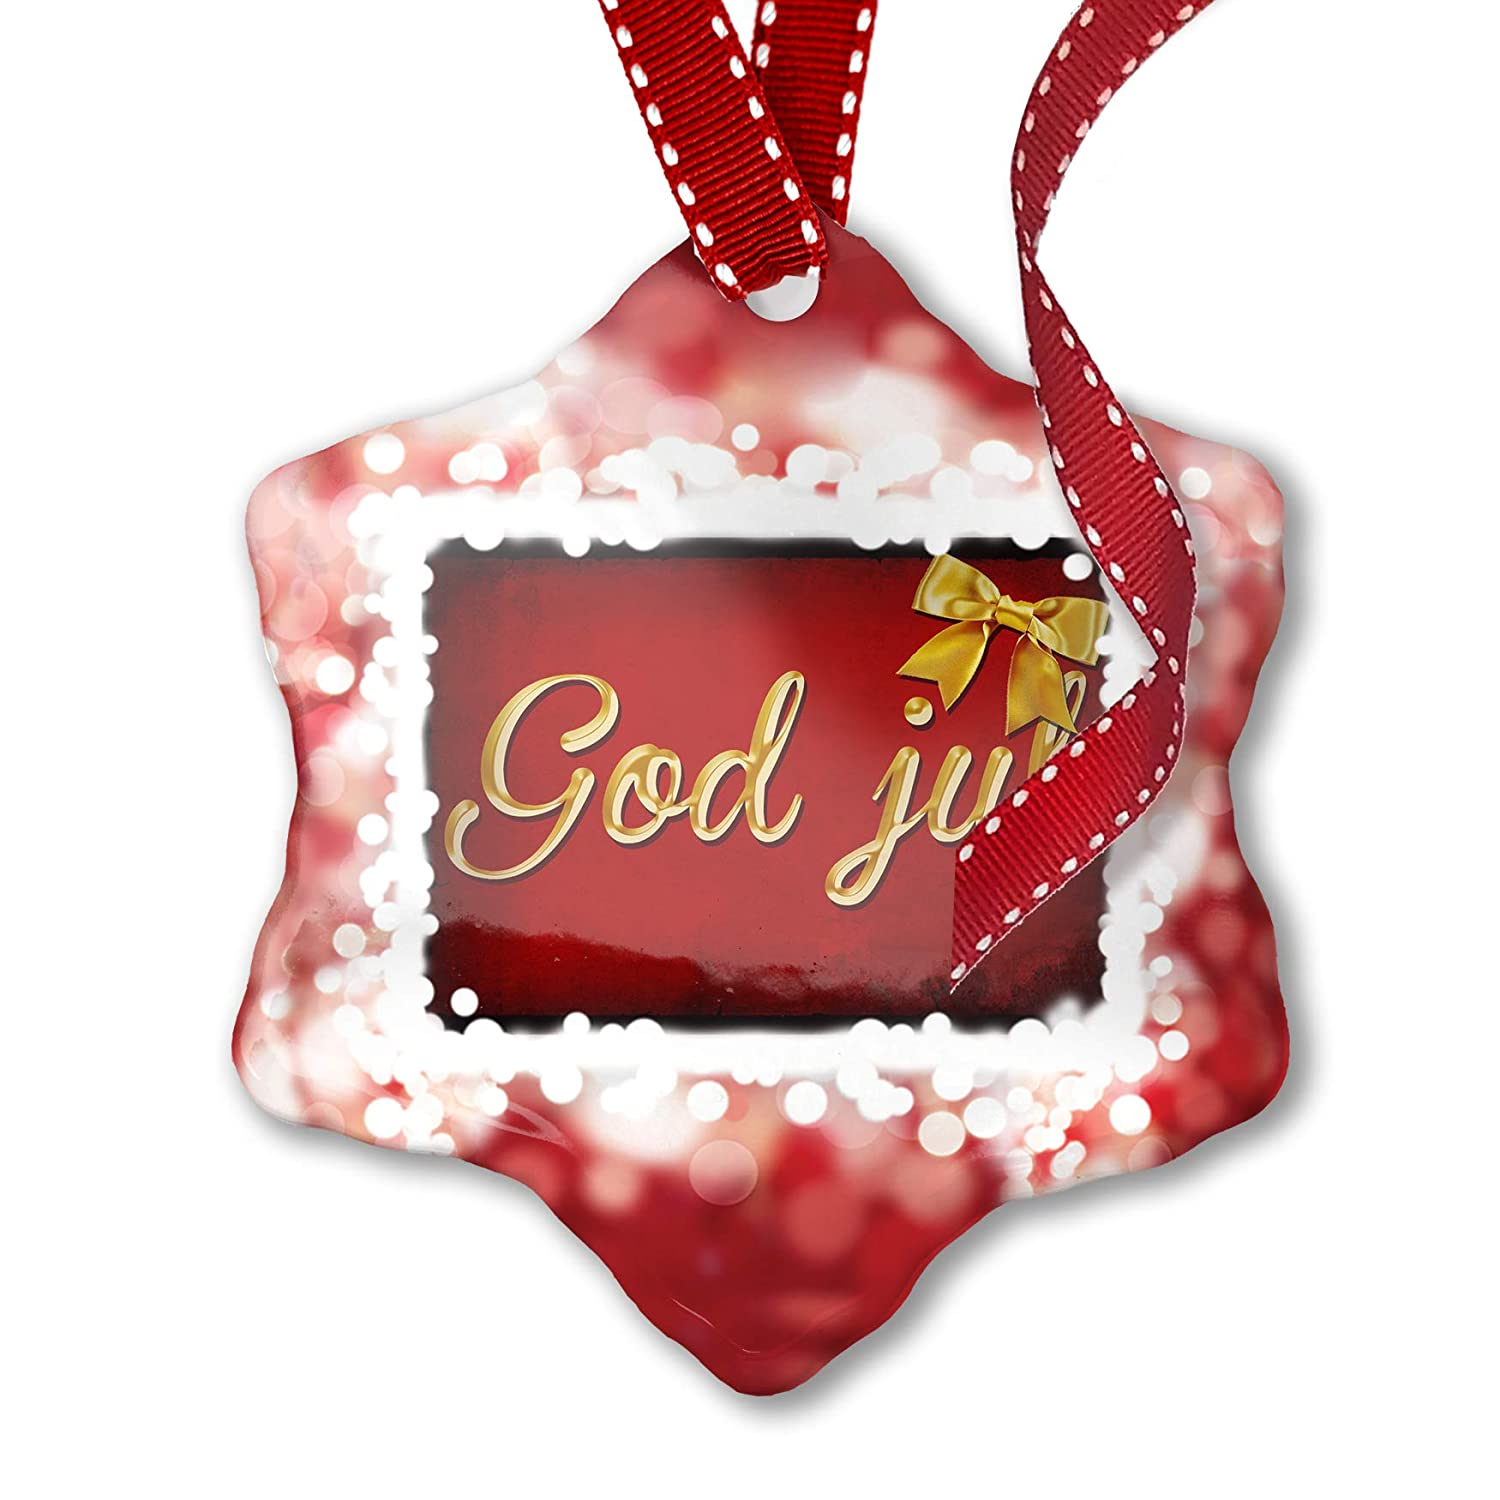 Merry Christmas In Norwegian.Neonblond Christmas Ornament Merry Christmas In Norwegian From Norway Red